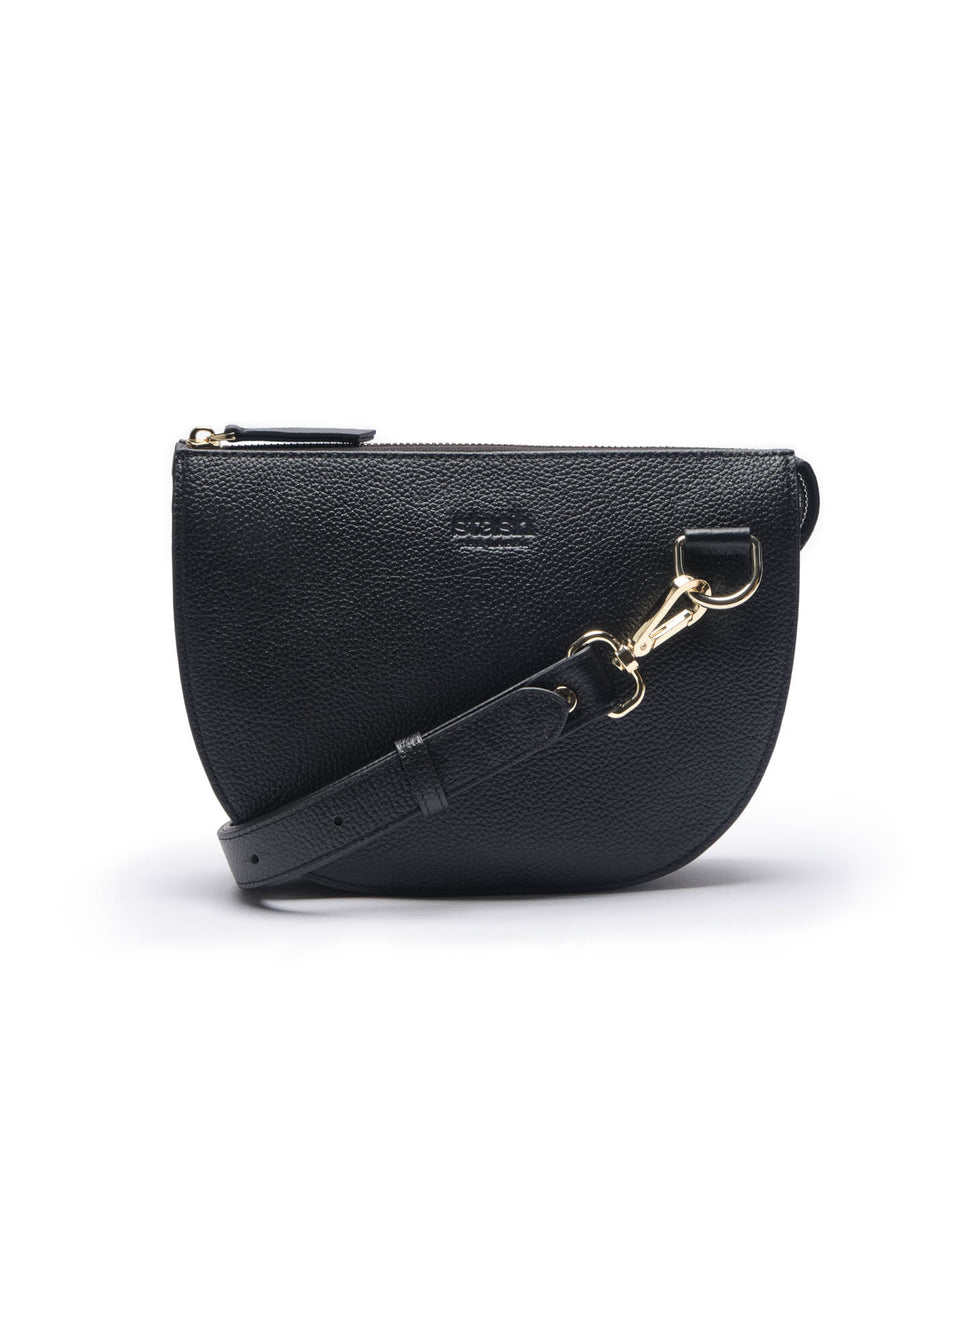 Half-moon Crossbody Blind embossed logo)